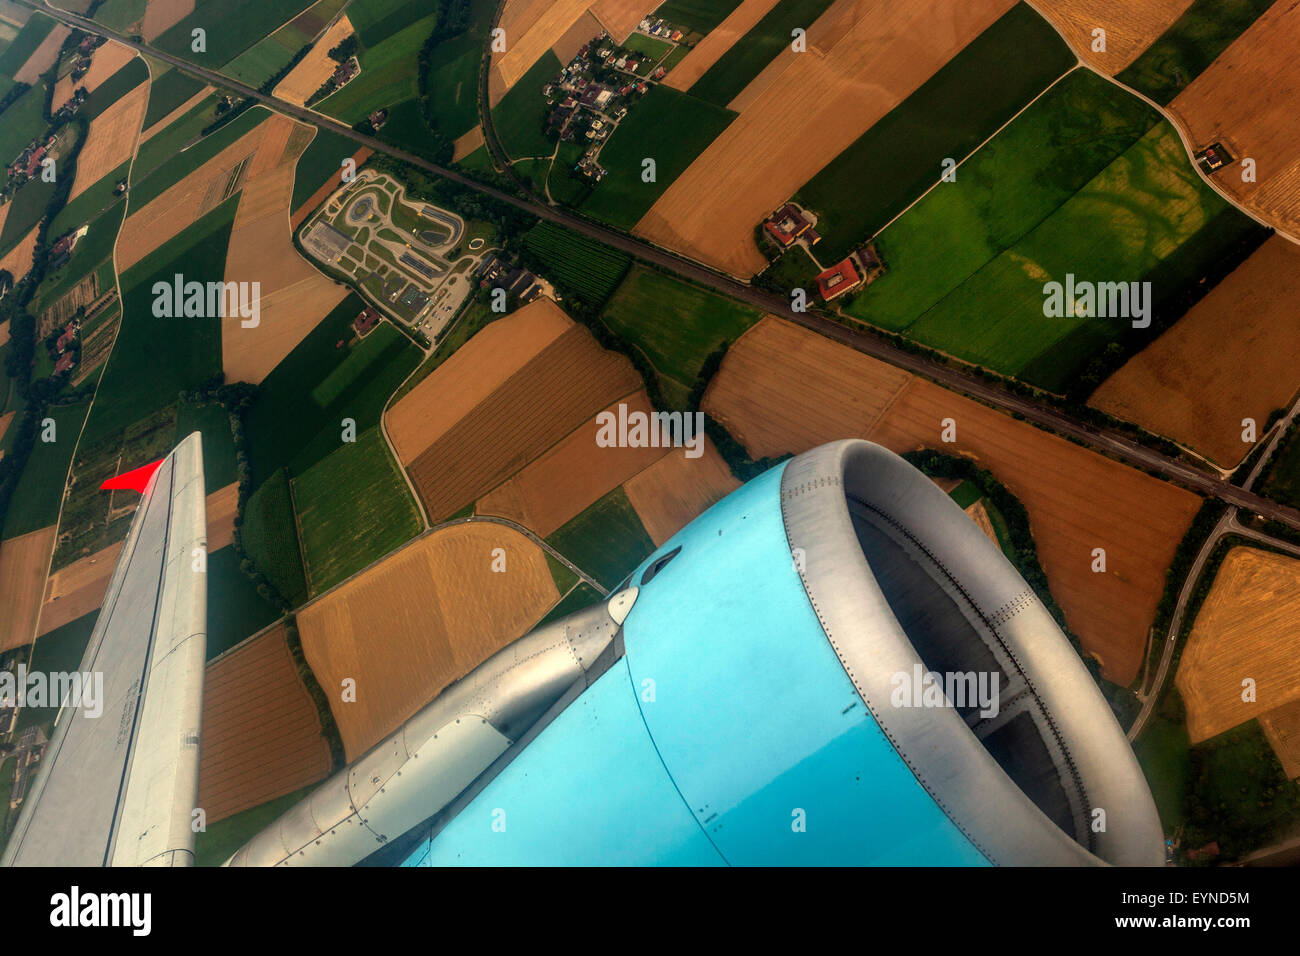 Airbus A320 Austrian engine landscape aerial view - Stock Image